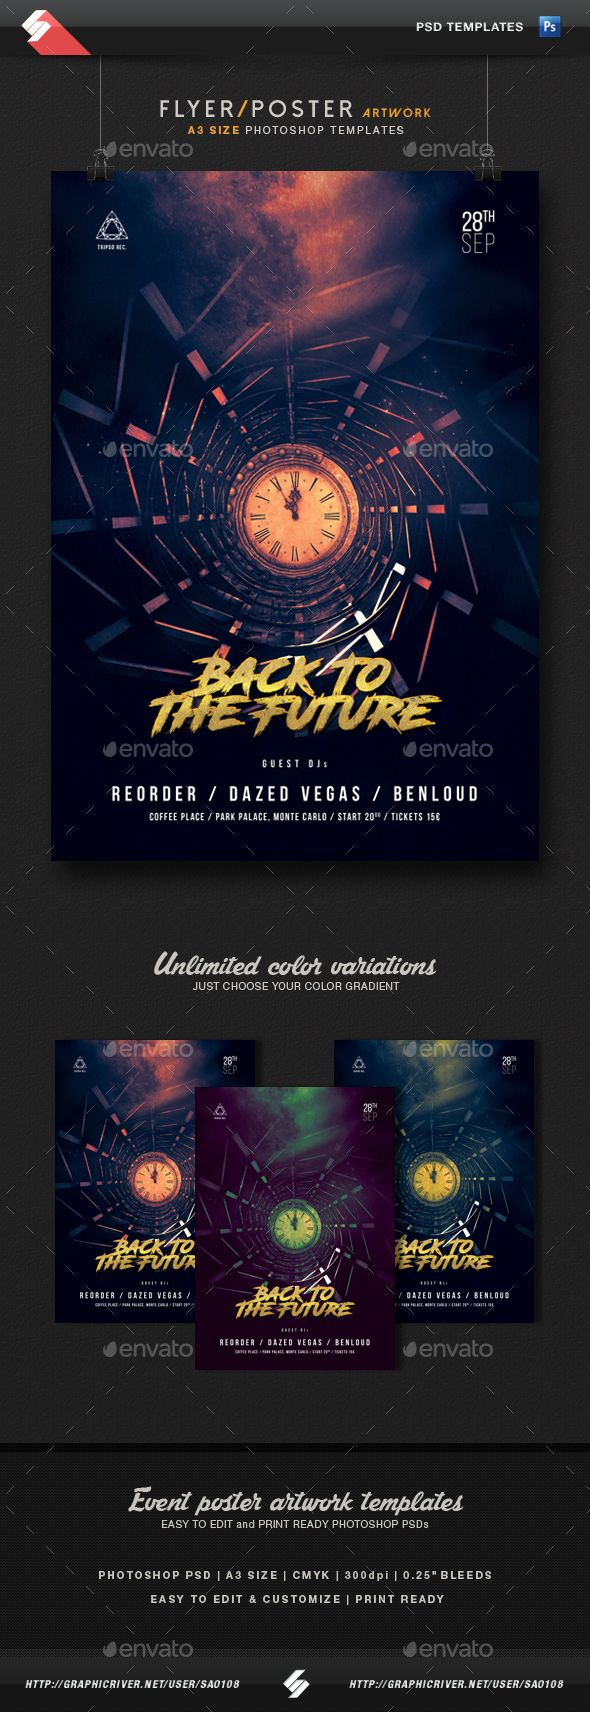 Back To The Future - Party Flyer / Poster Template A3 | Diseño de ...